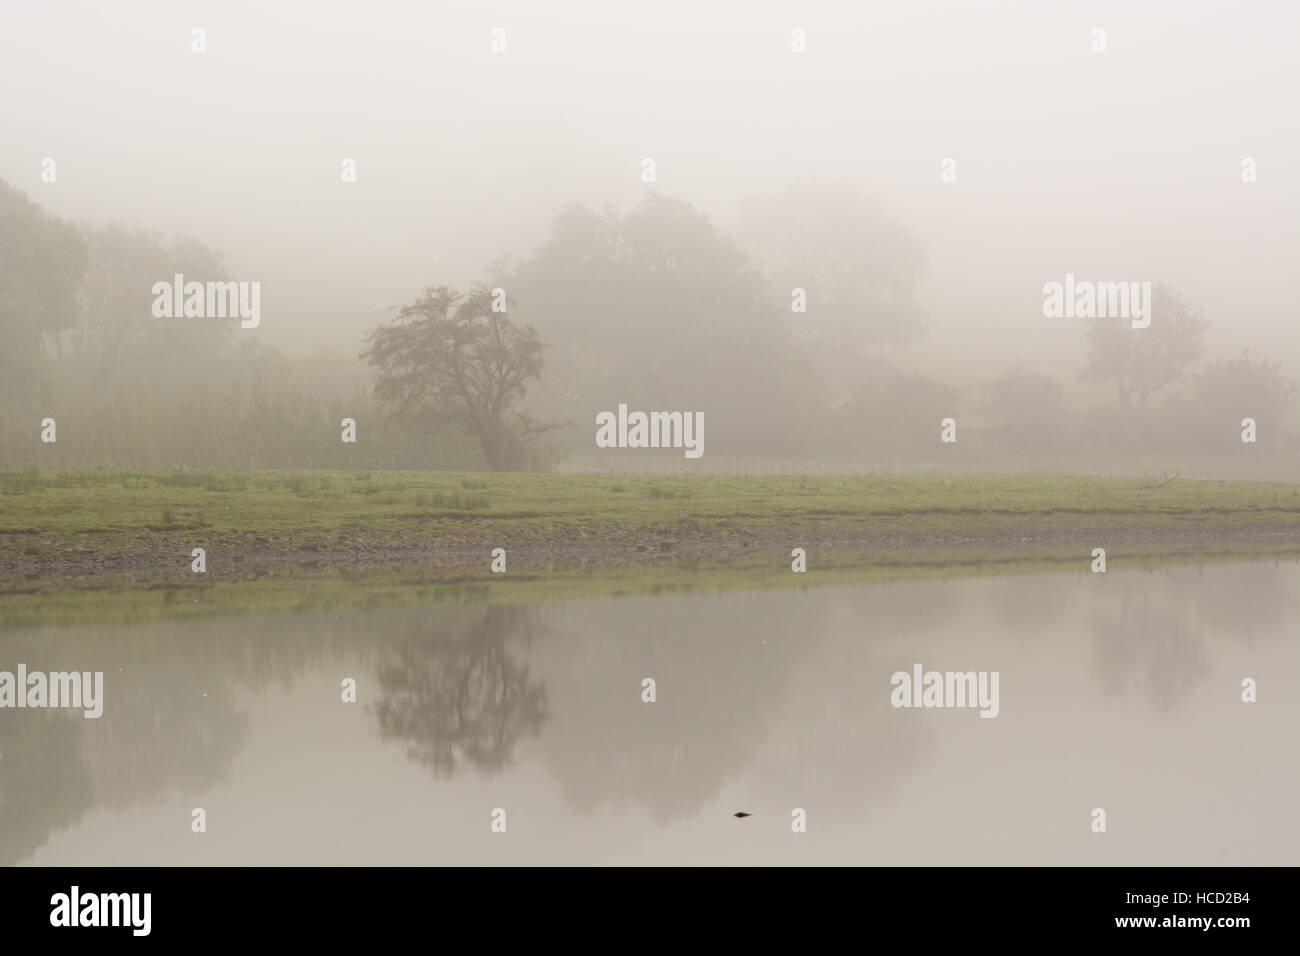 Minimal misty view of trees reflected in water - Stock Image